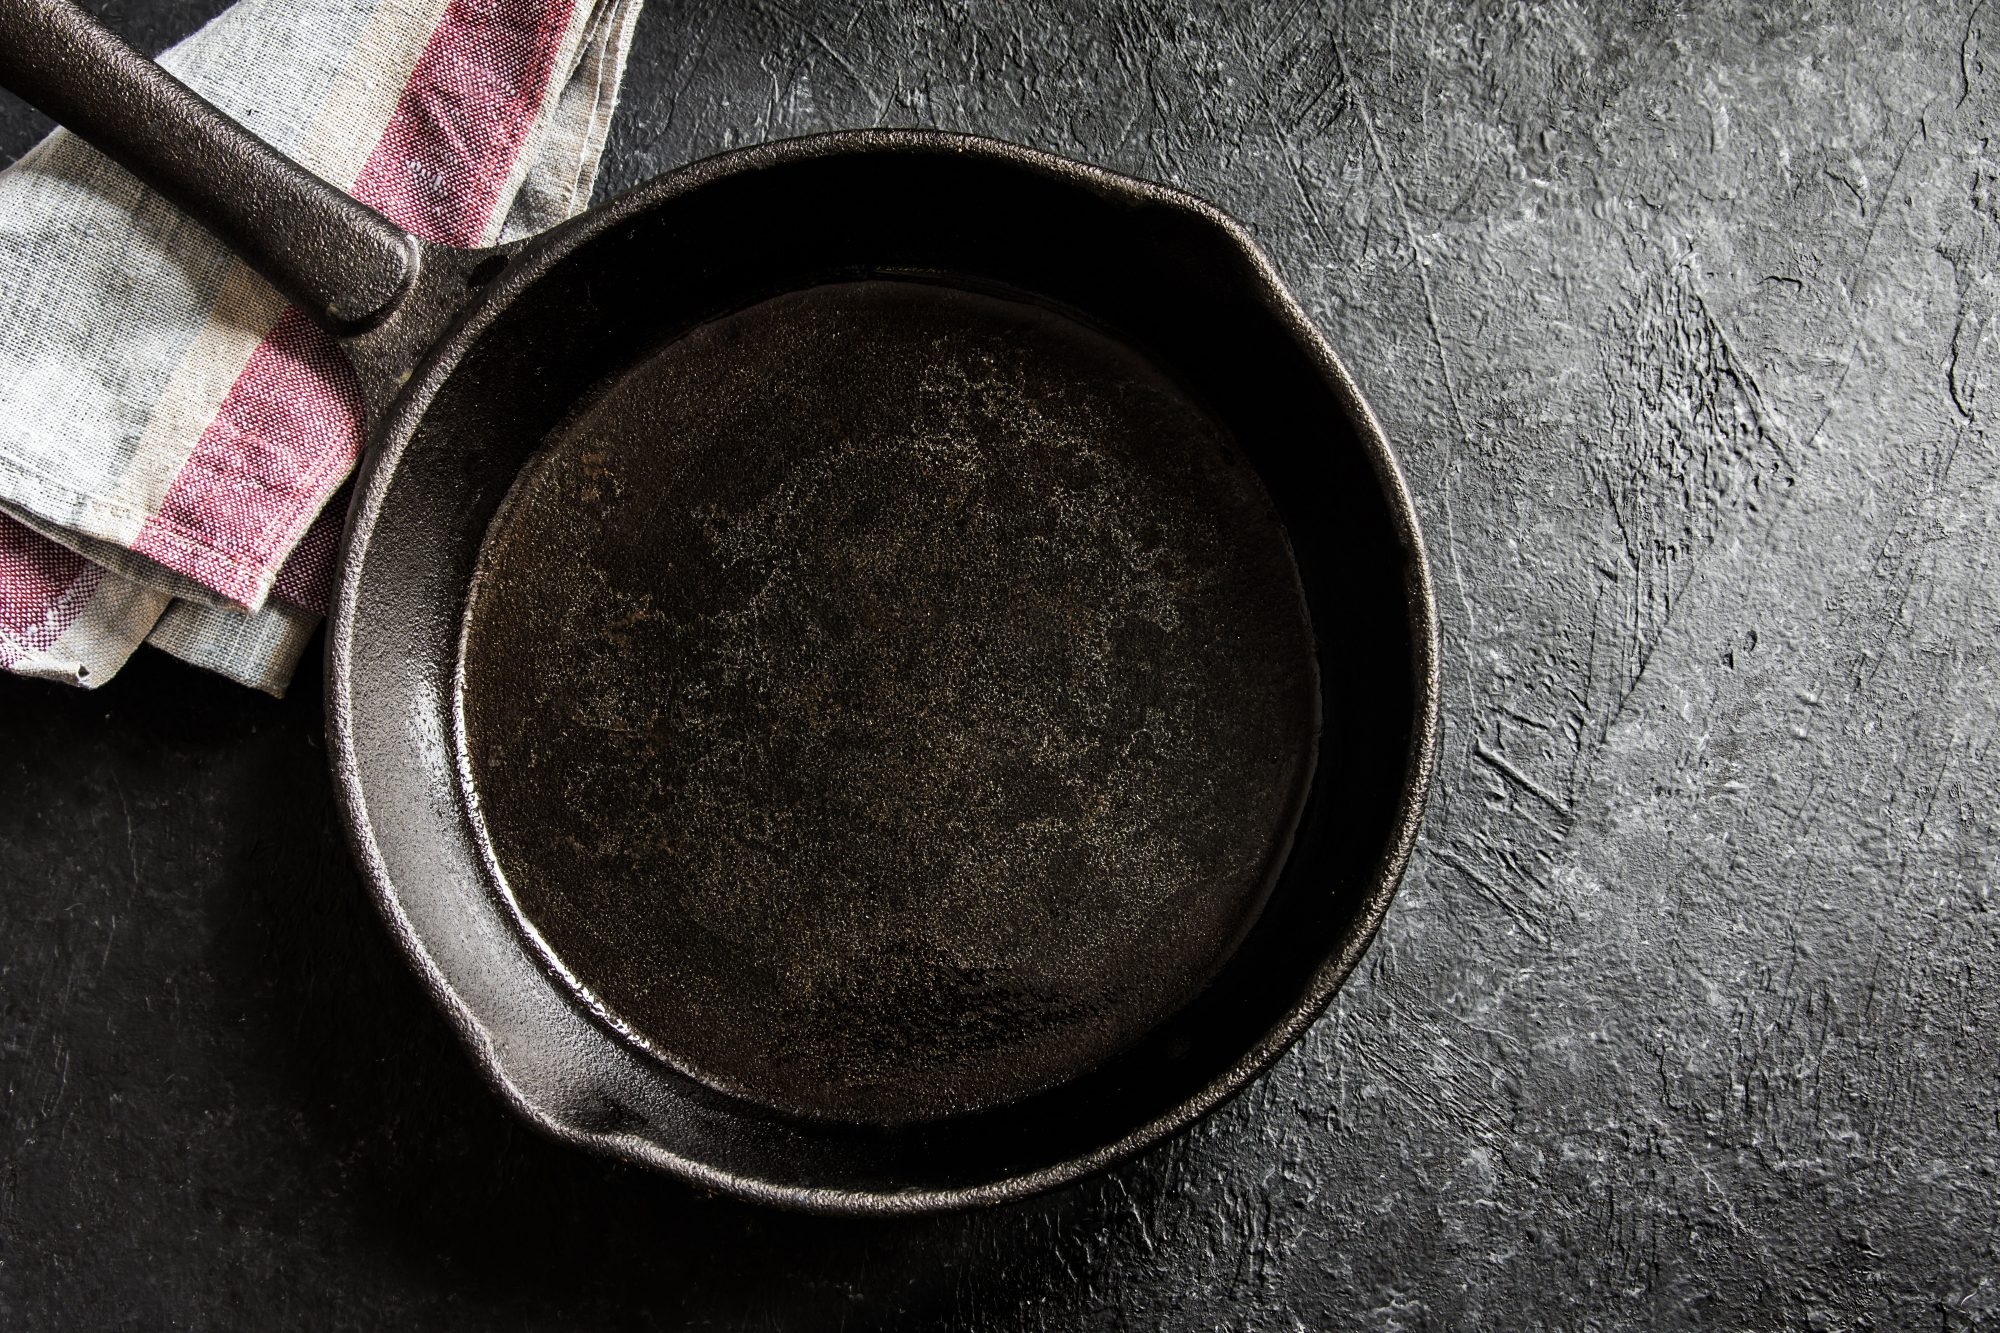 never worry about cleaning your cast iron skillet again with this